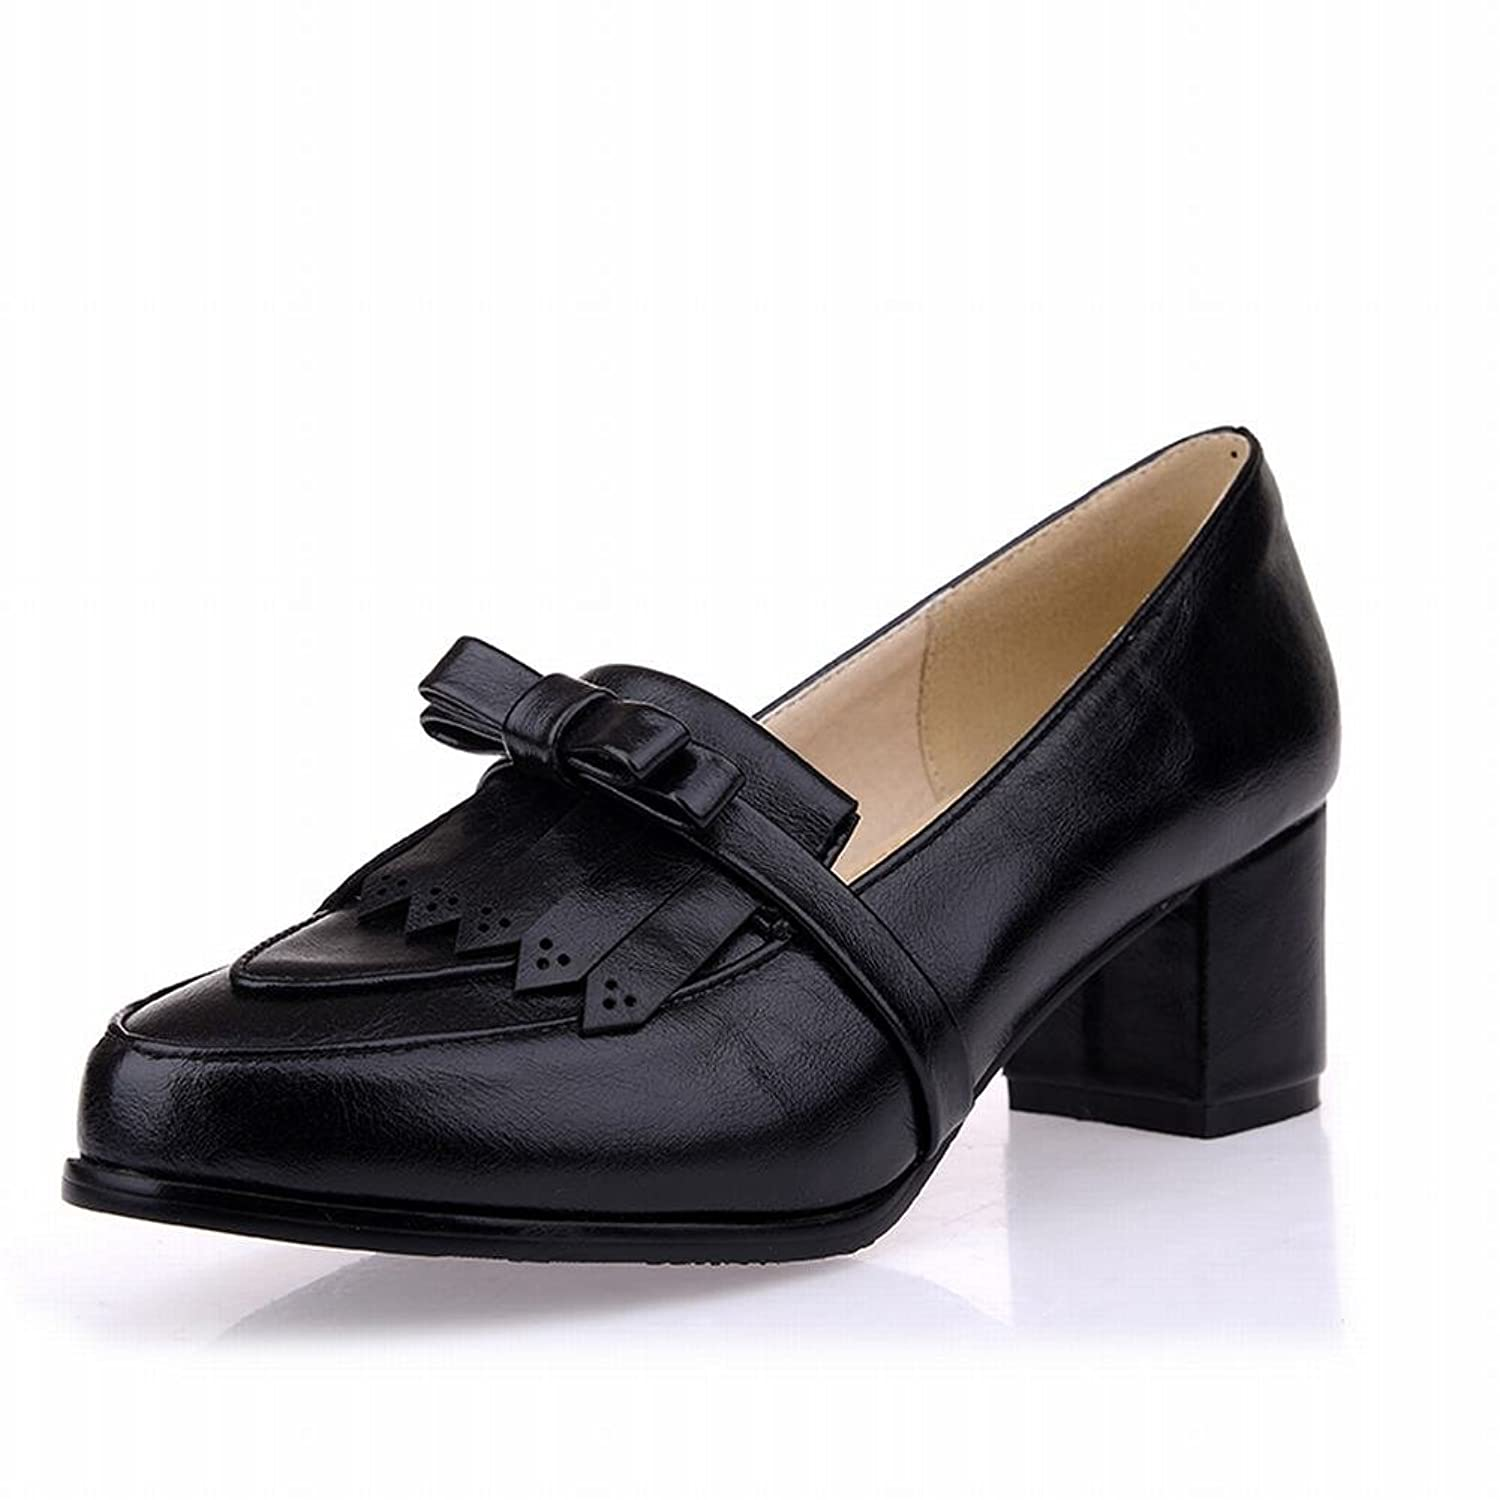 Latasa Women's Cute Chic Tassel & Bow Pointed-toe Mid Chunky Heels Slip on Tassel Loafers Shoes